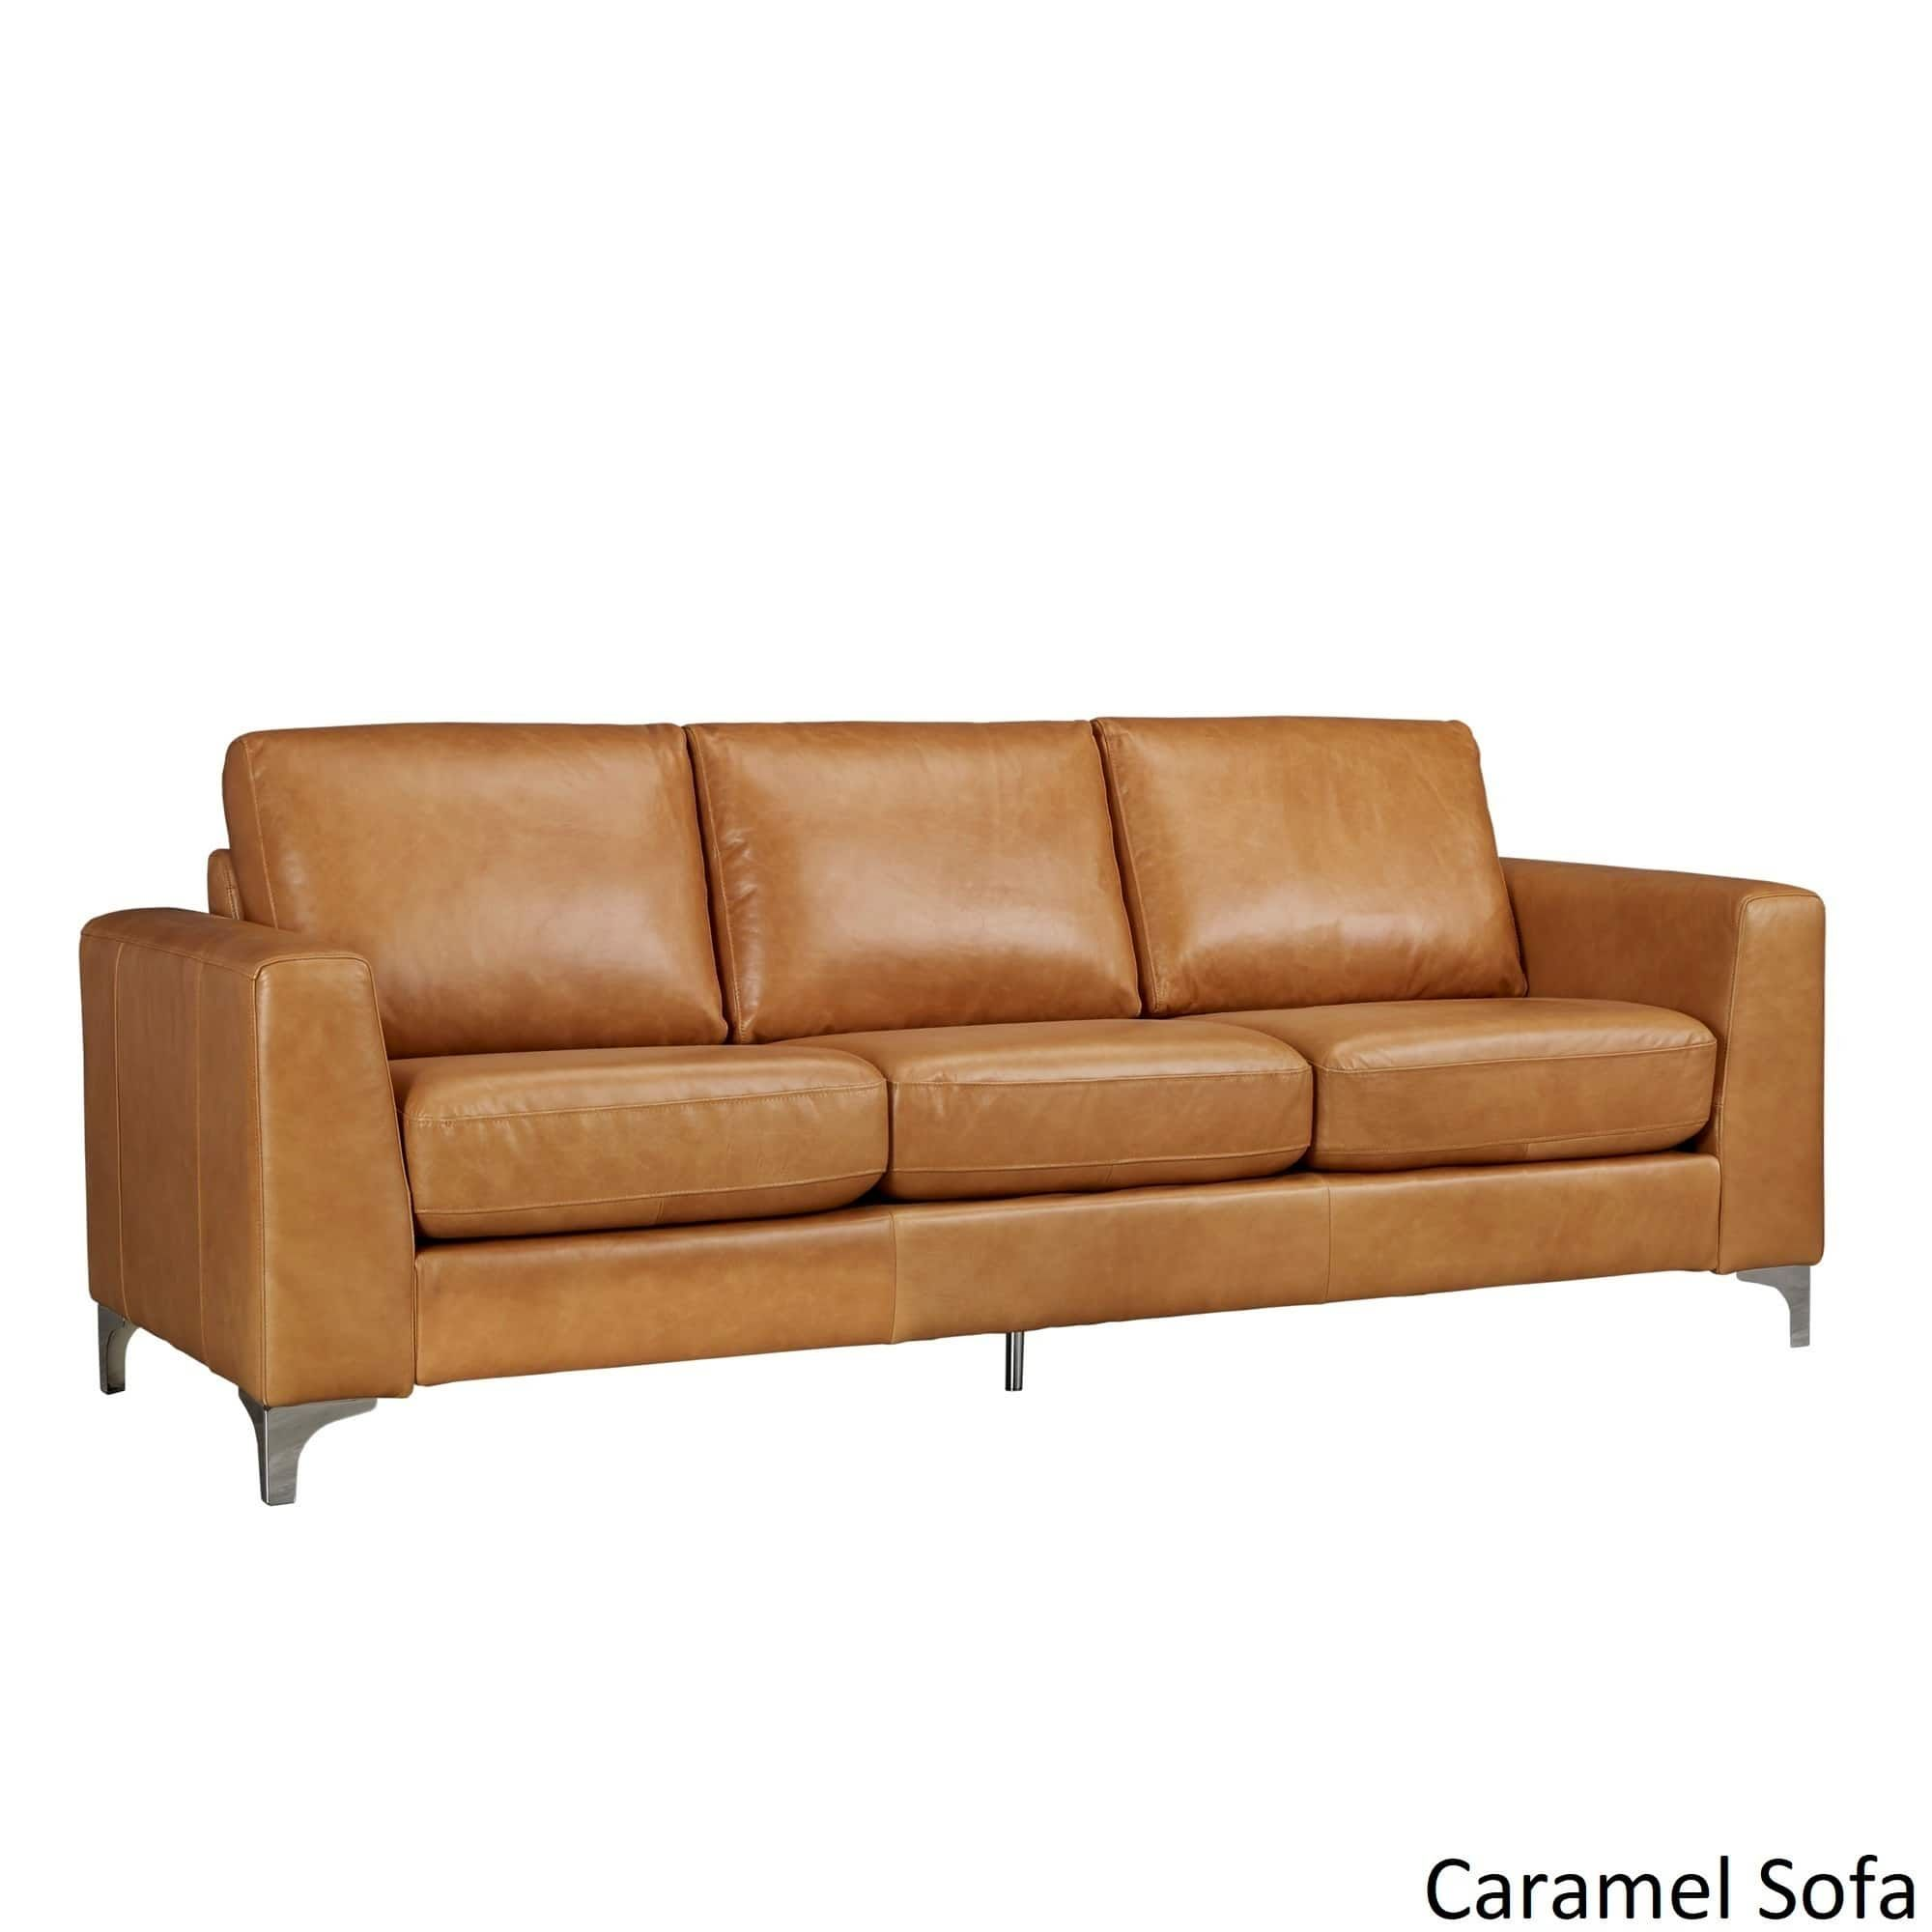 Bastian Aniline Leather Sofa By INSPIRE Q Modern (Discontinued), Orange  (Faux Leather)